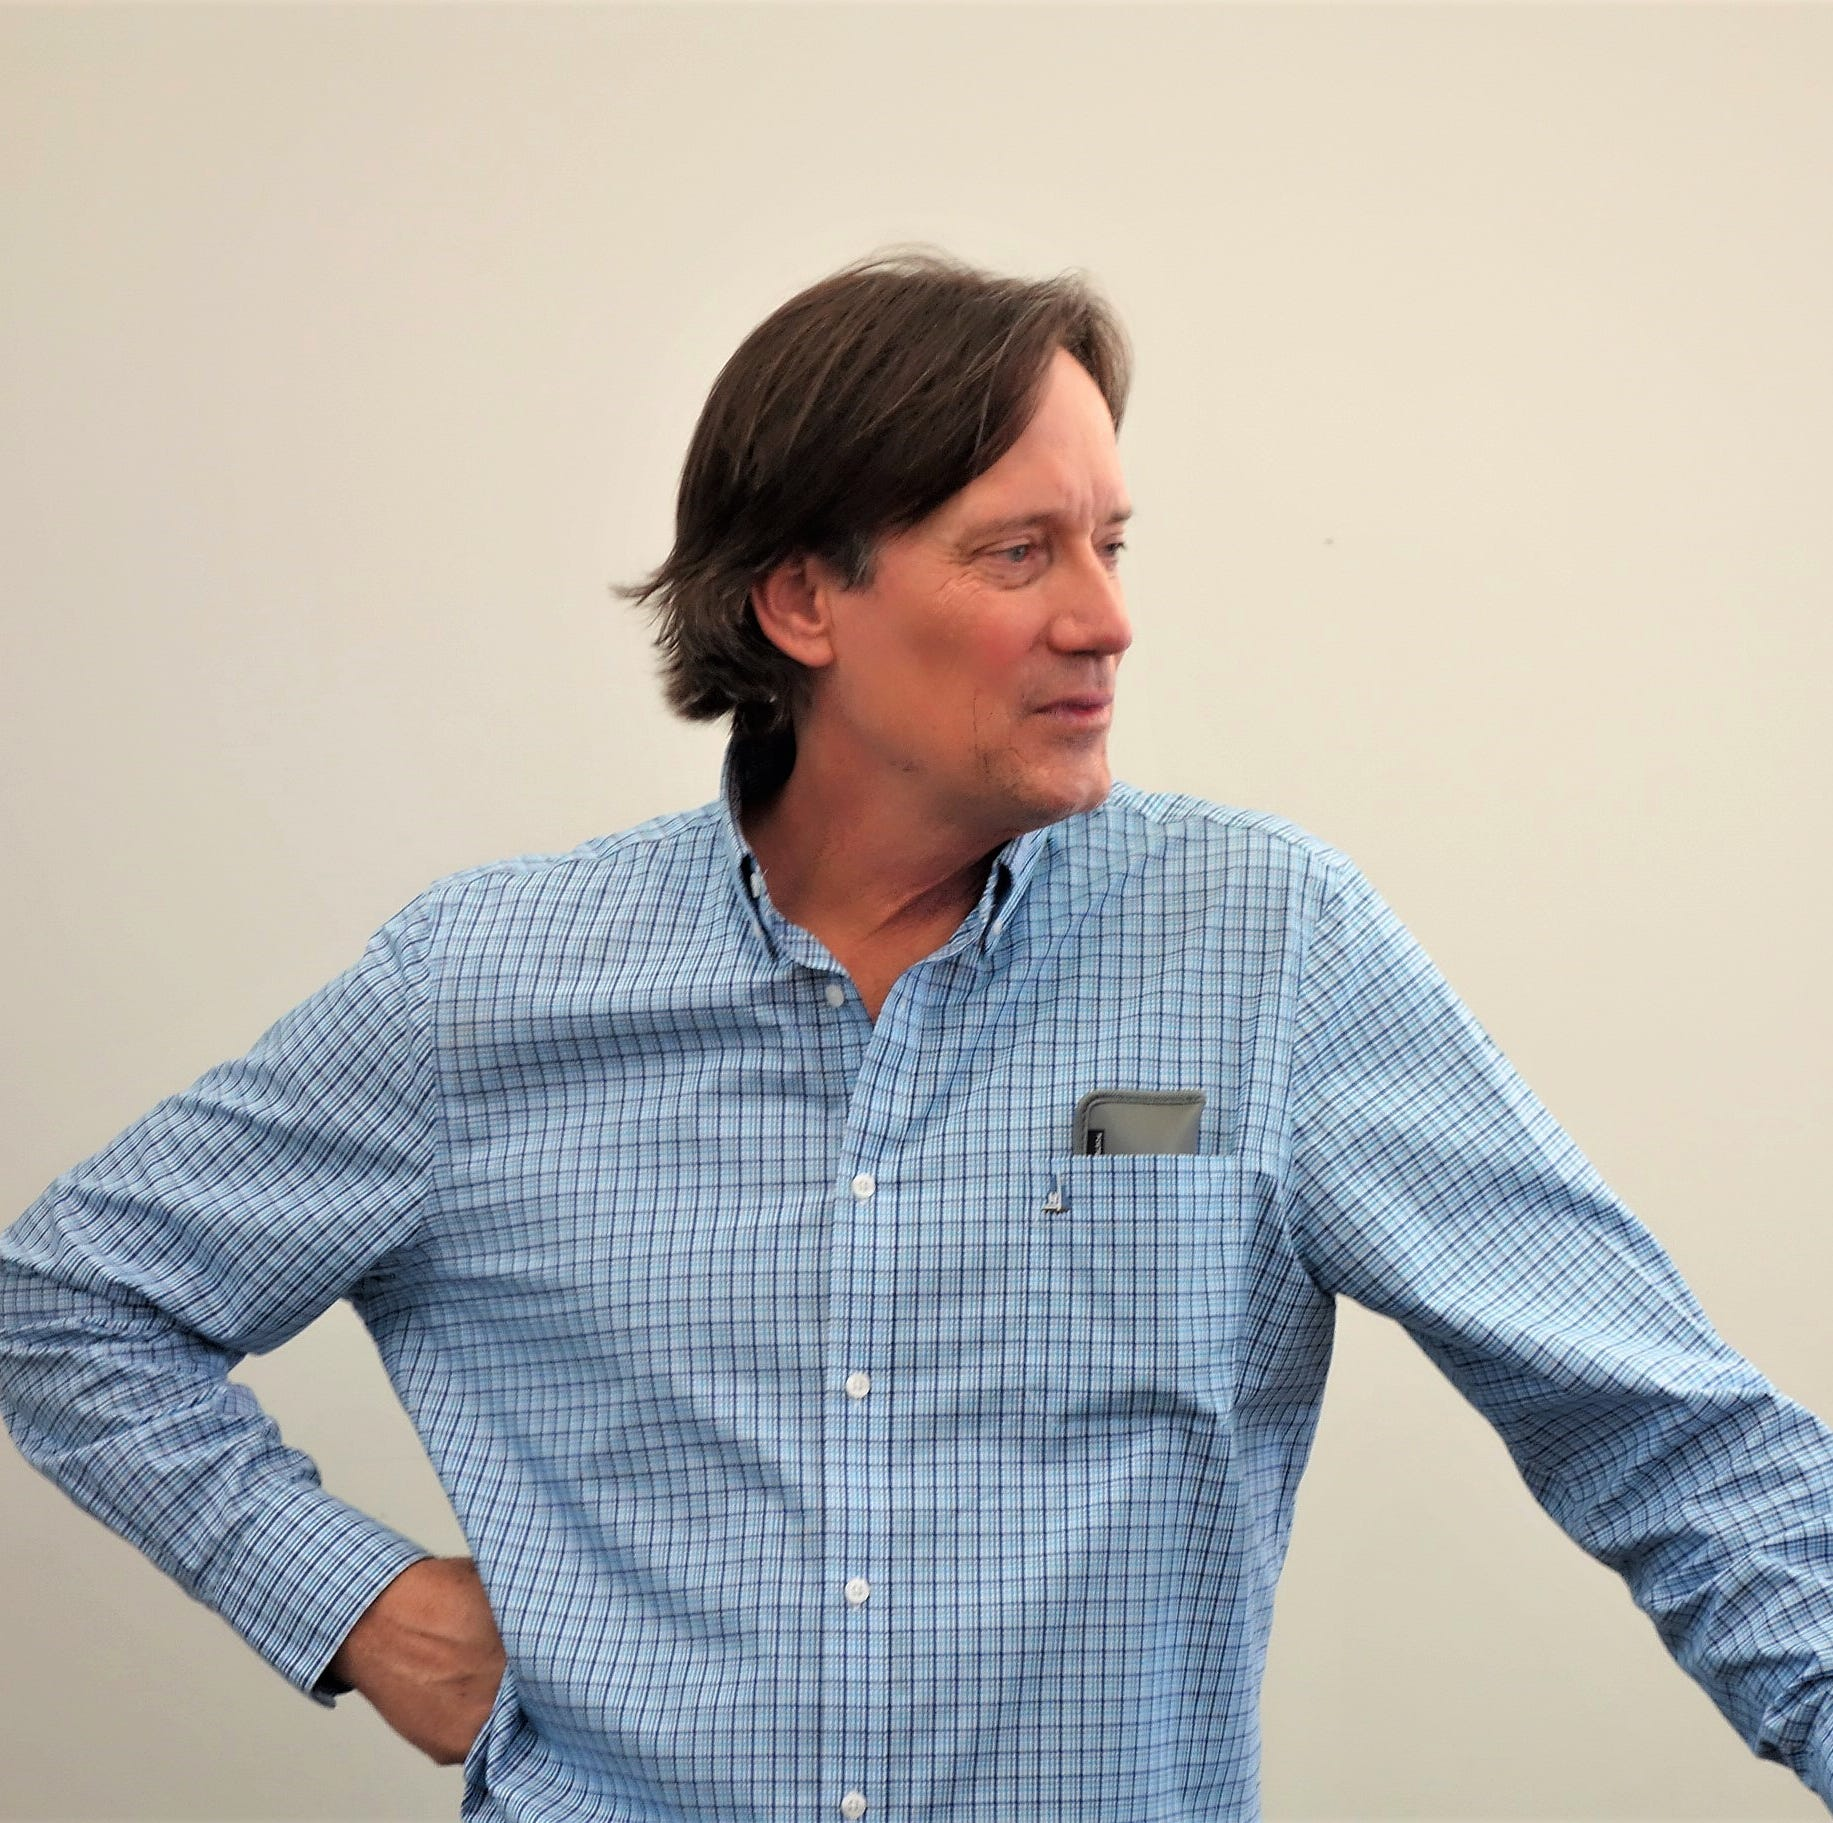 'Hercules' actor Kevin Sorbo: 'Completely blacklisted' for being Christian in Hollywood